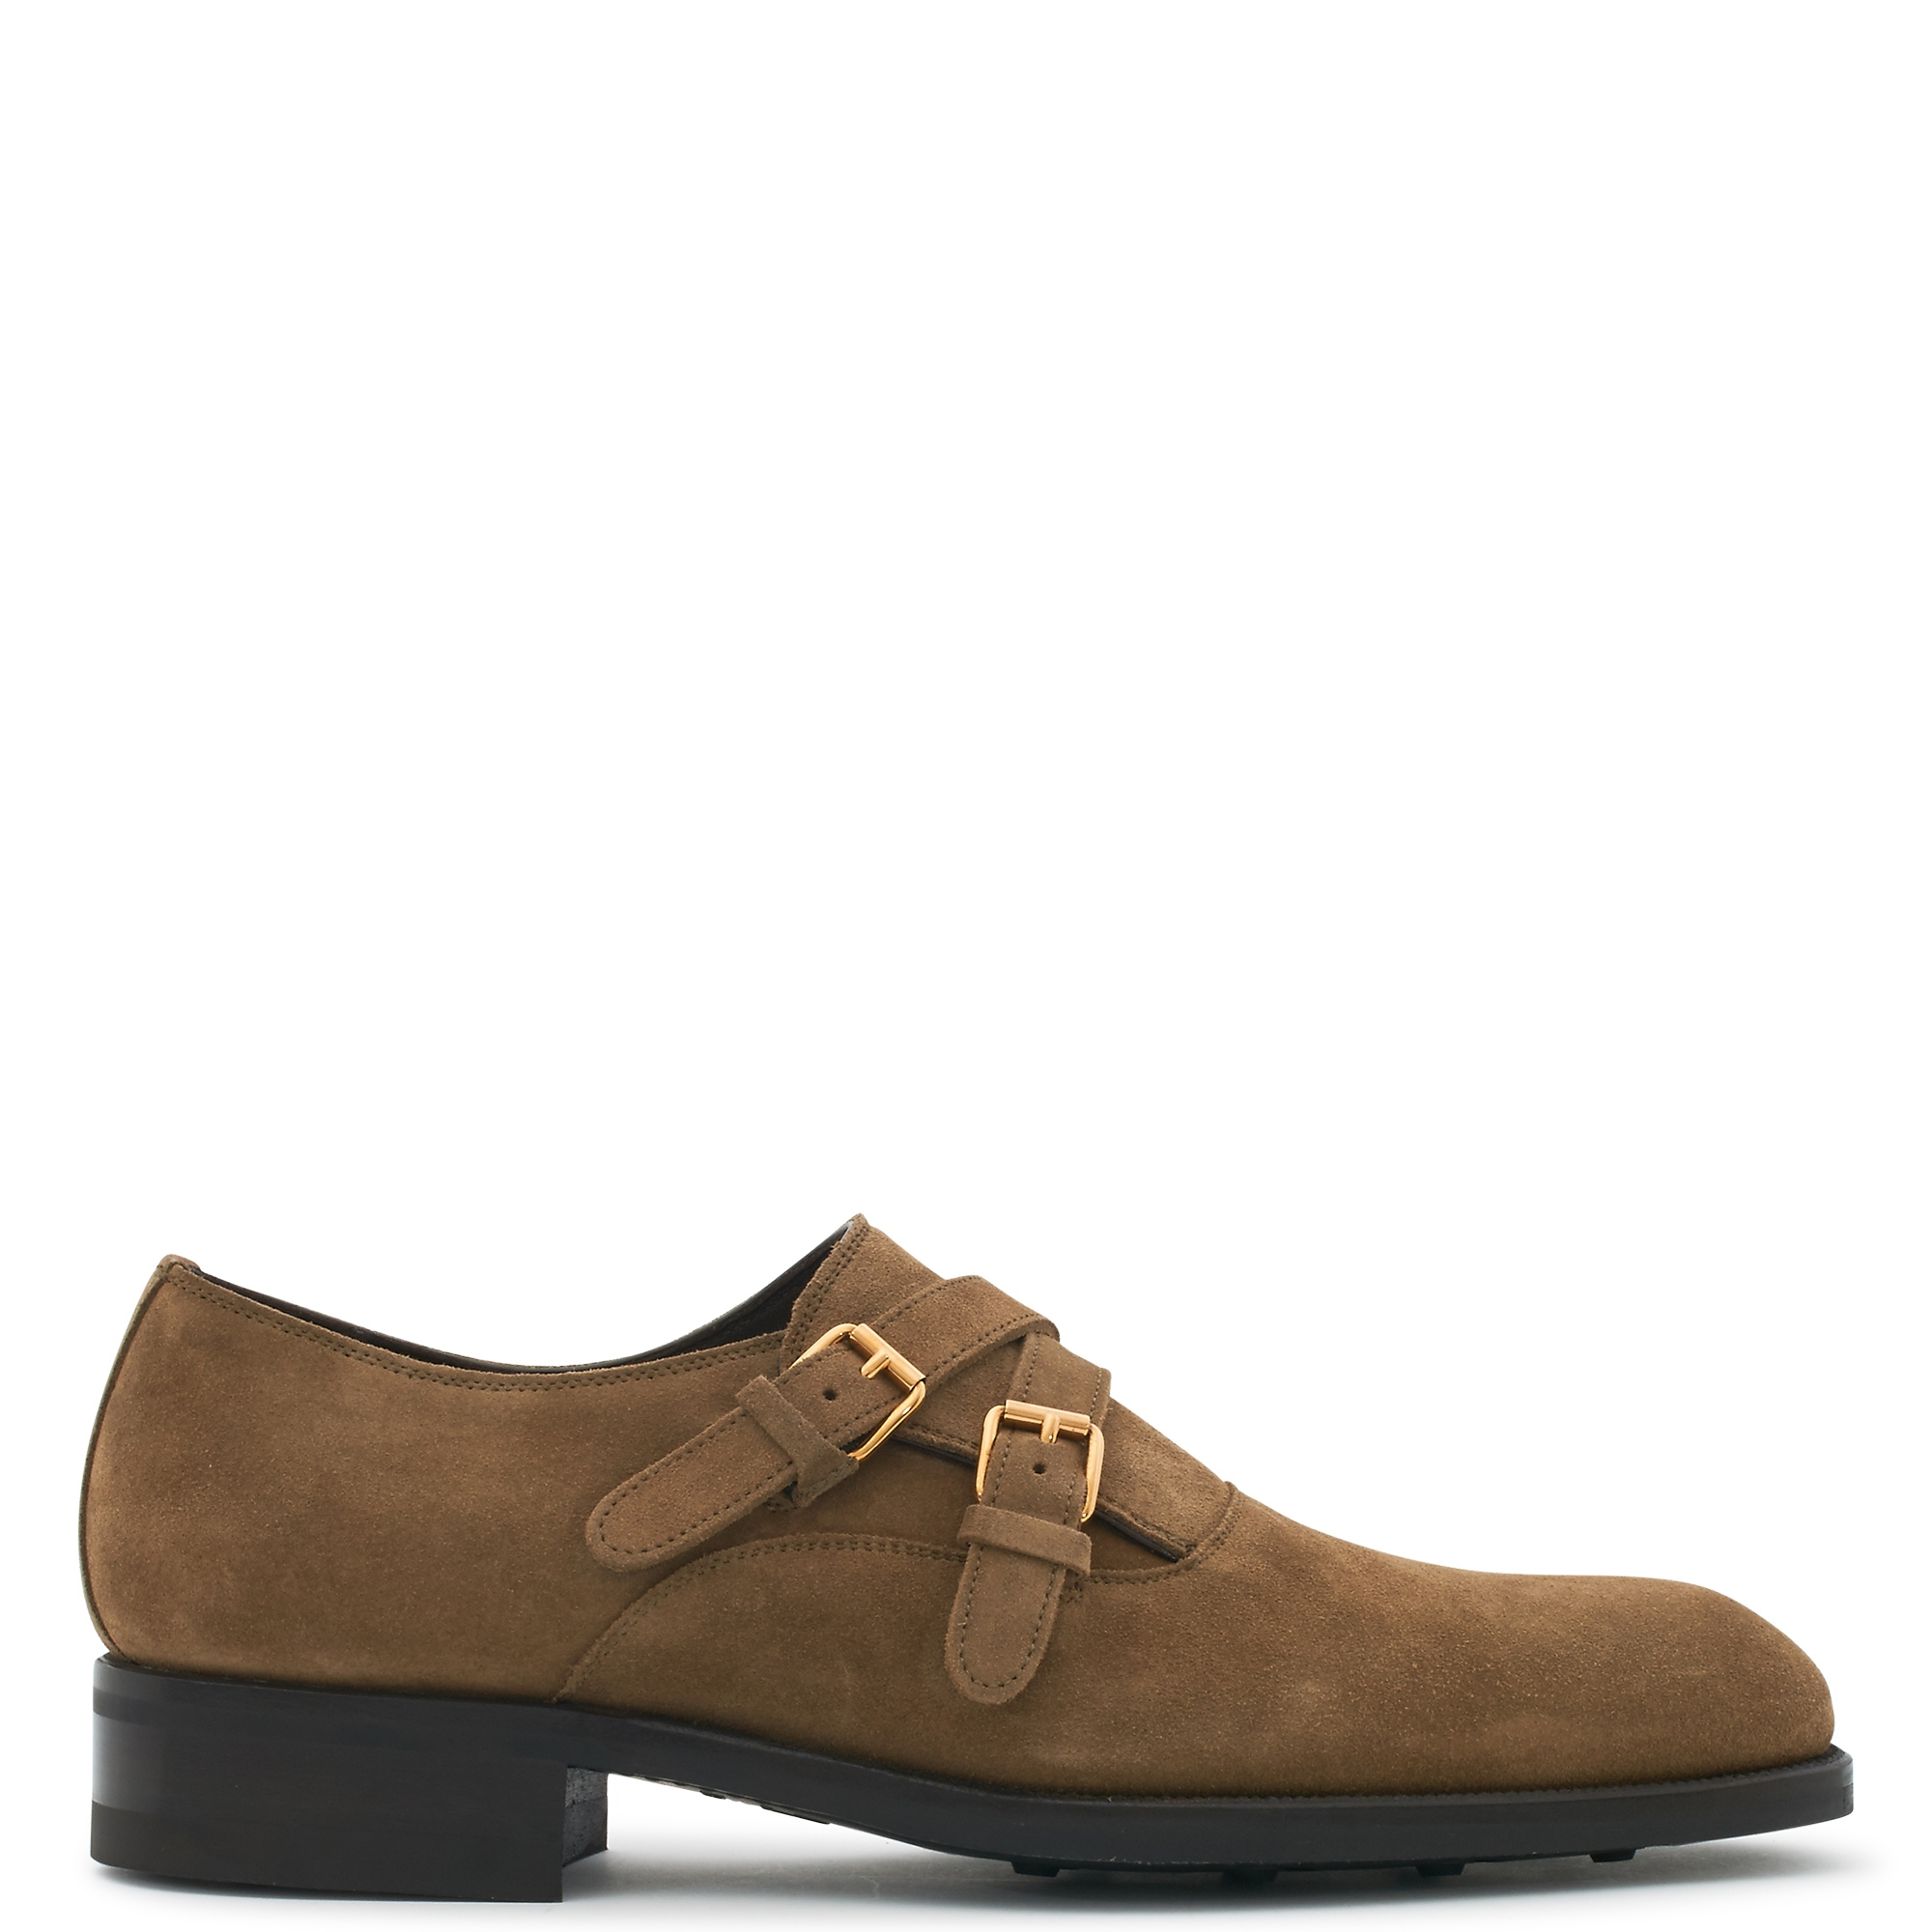 John Lobb Shoes >> Lyst - Tom ford Suede Monk-strap Shoes in Brown for Men